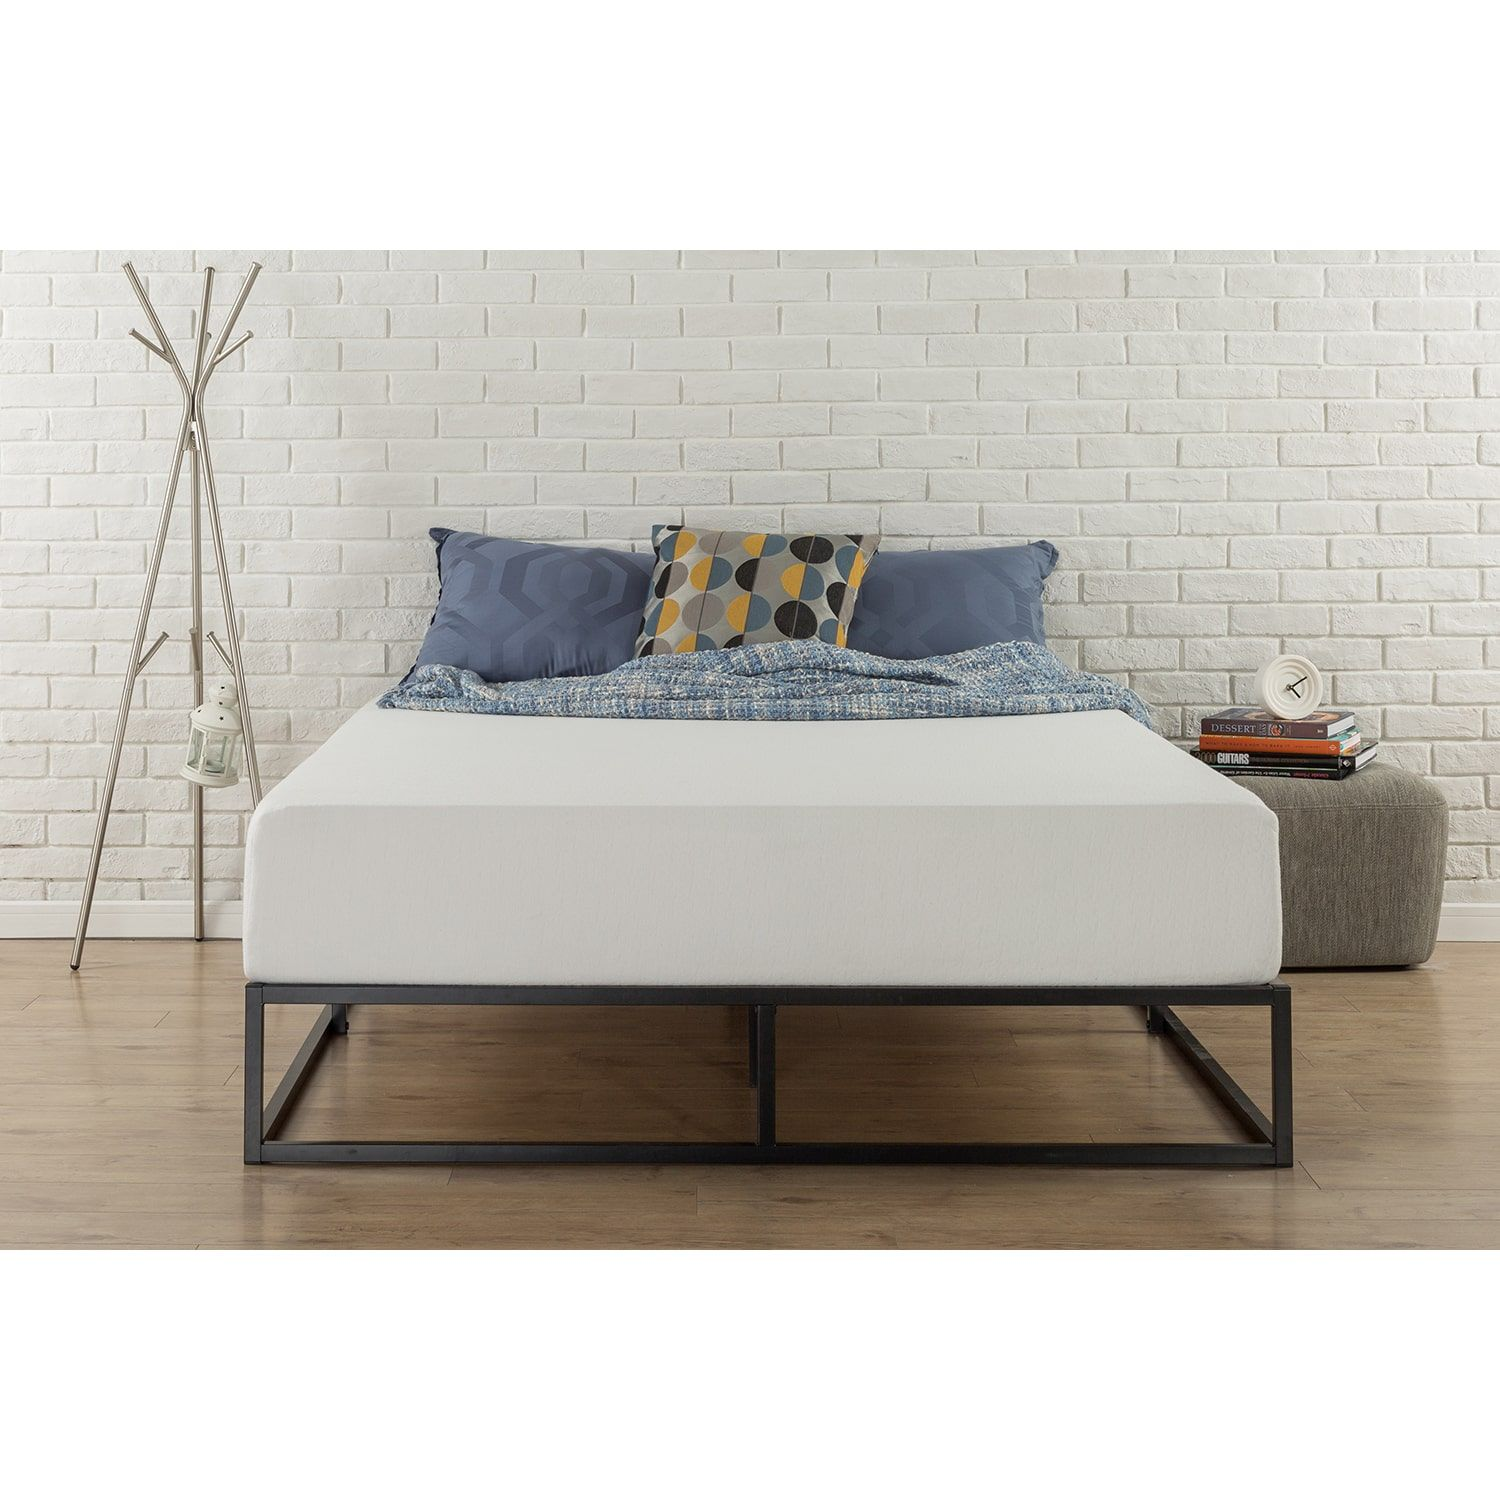 Priage 10-inch Steel Box Bed Frame (King) - Walmart.com | home decor ...